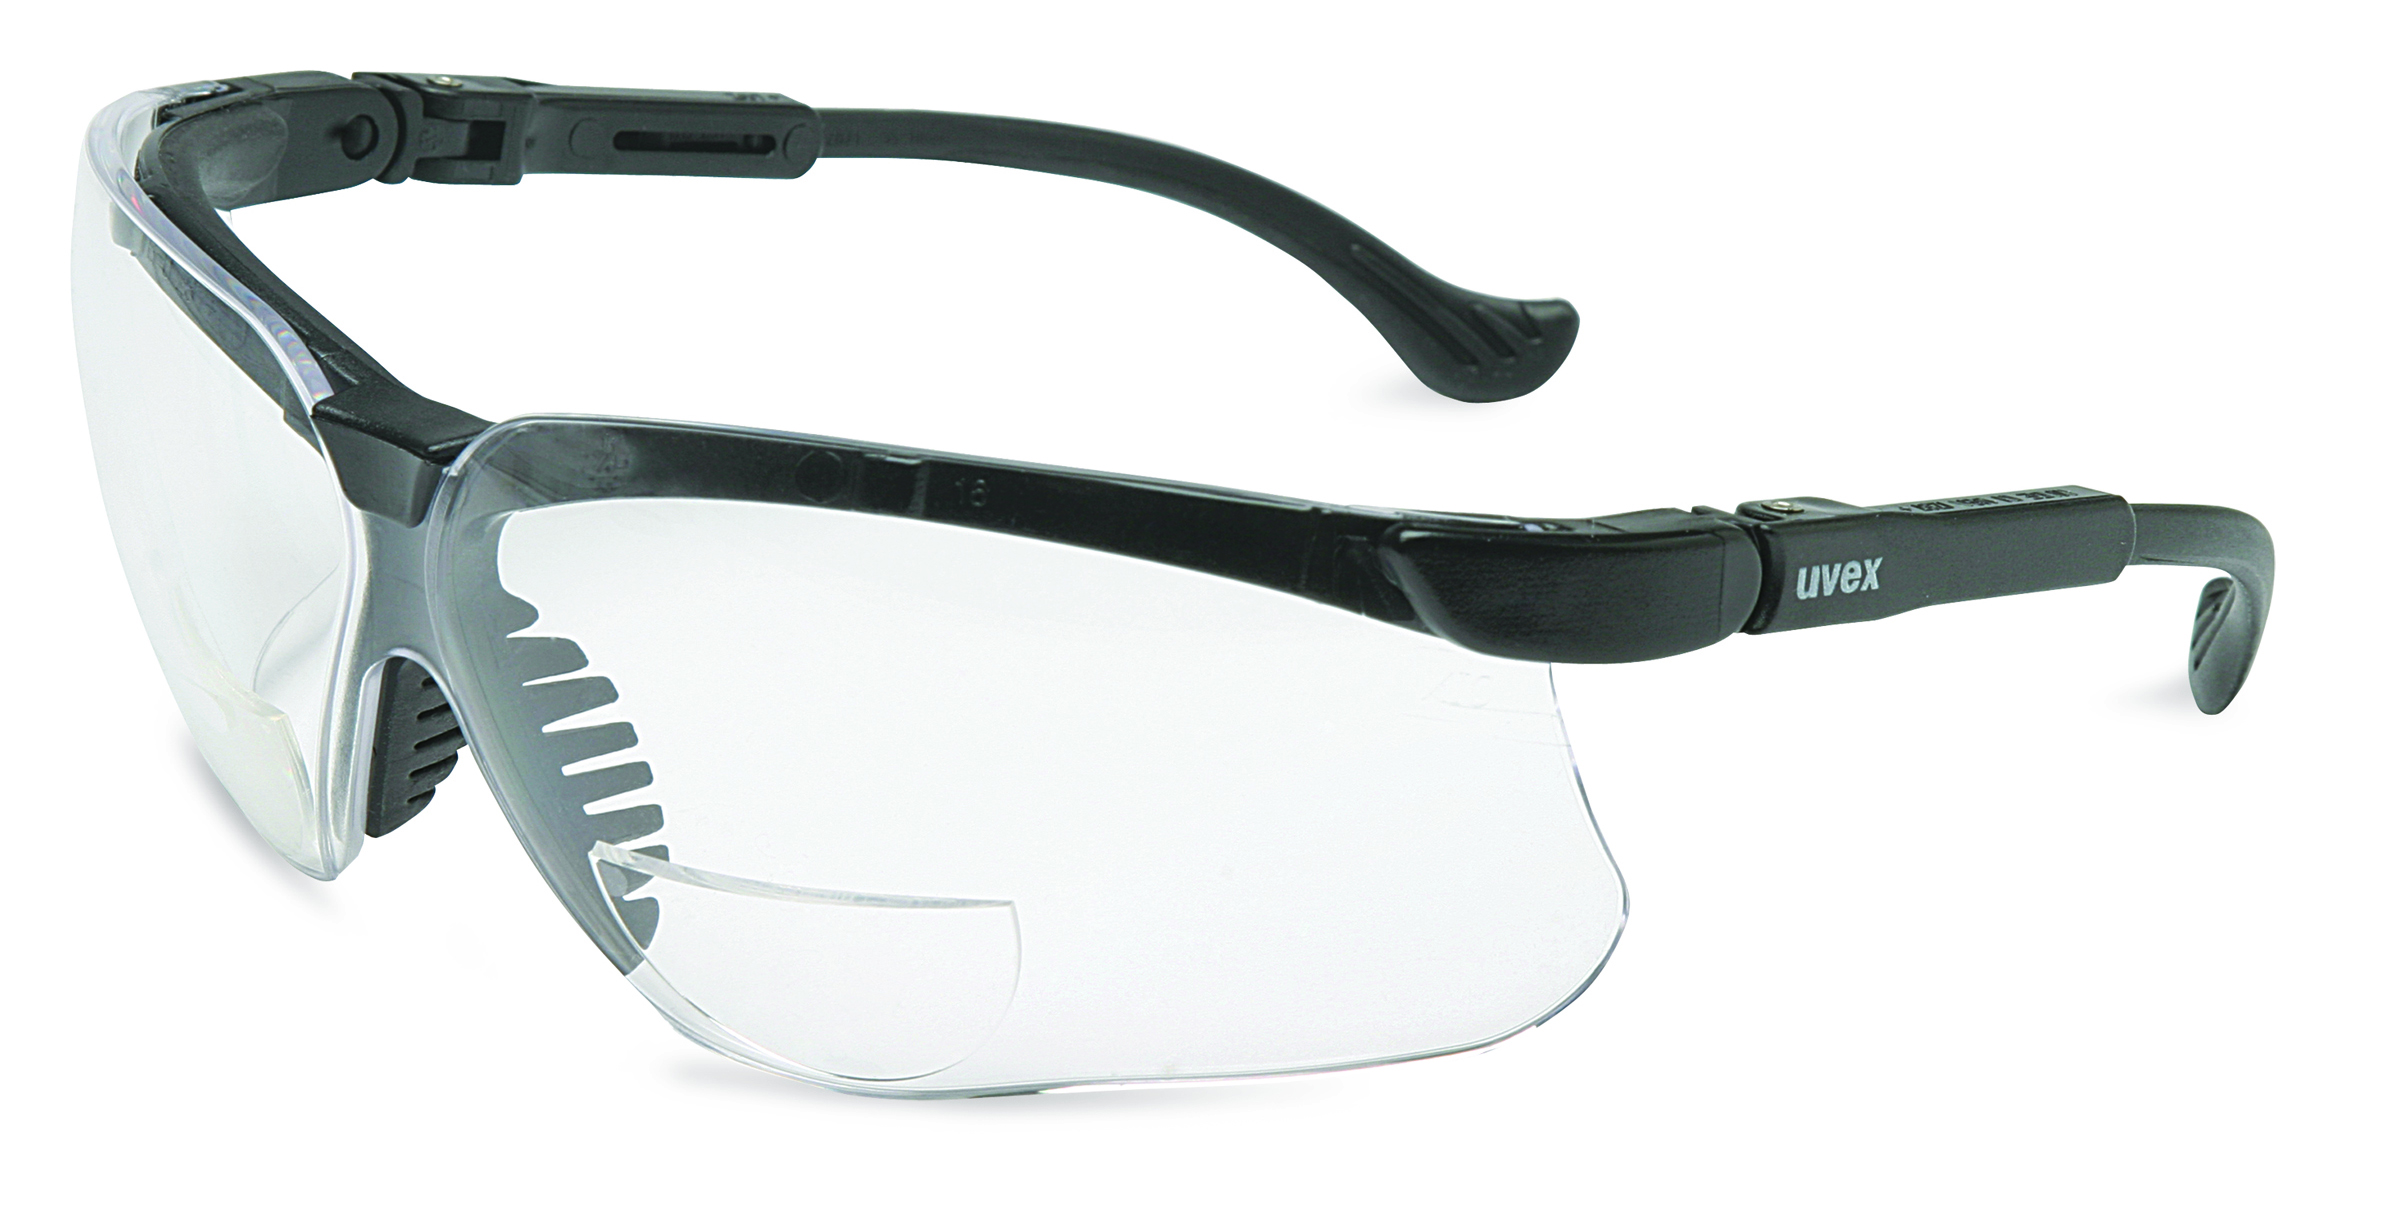 S3764 - Uvex Genesis® Readers-Uvex Genesis® Readers Eyewear, Clear +3.0 Diopter Lens, Black Frame-----UOM: 1/EA